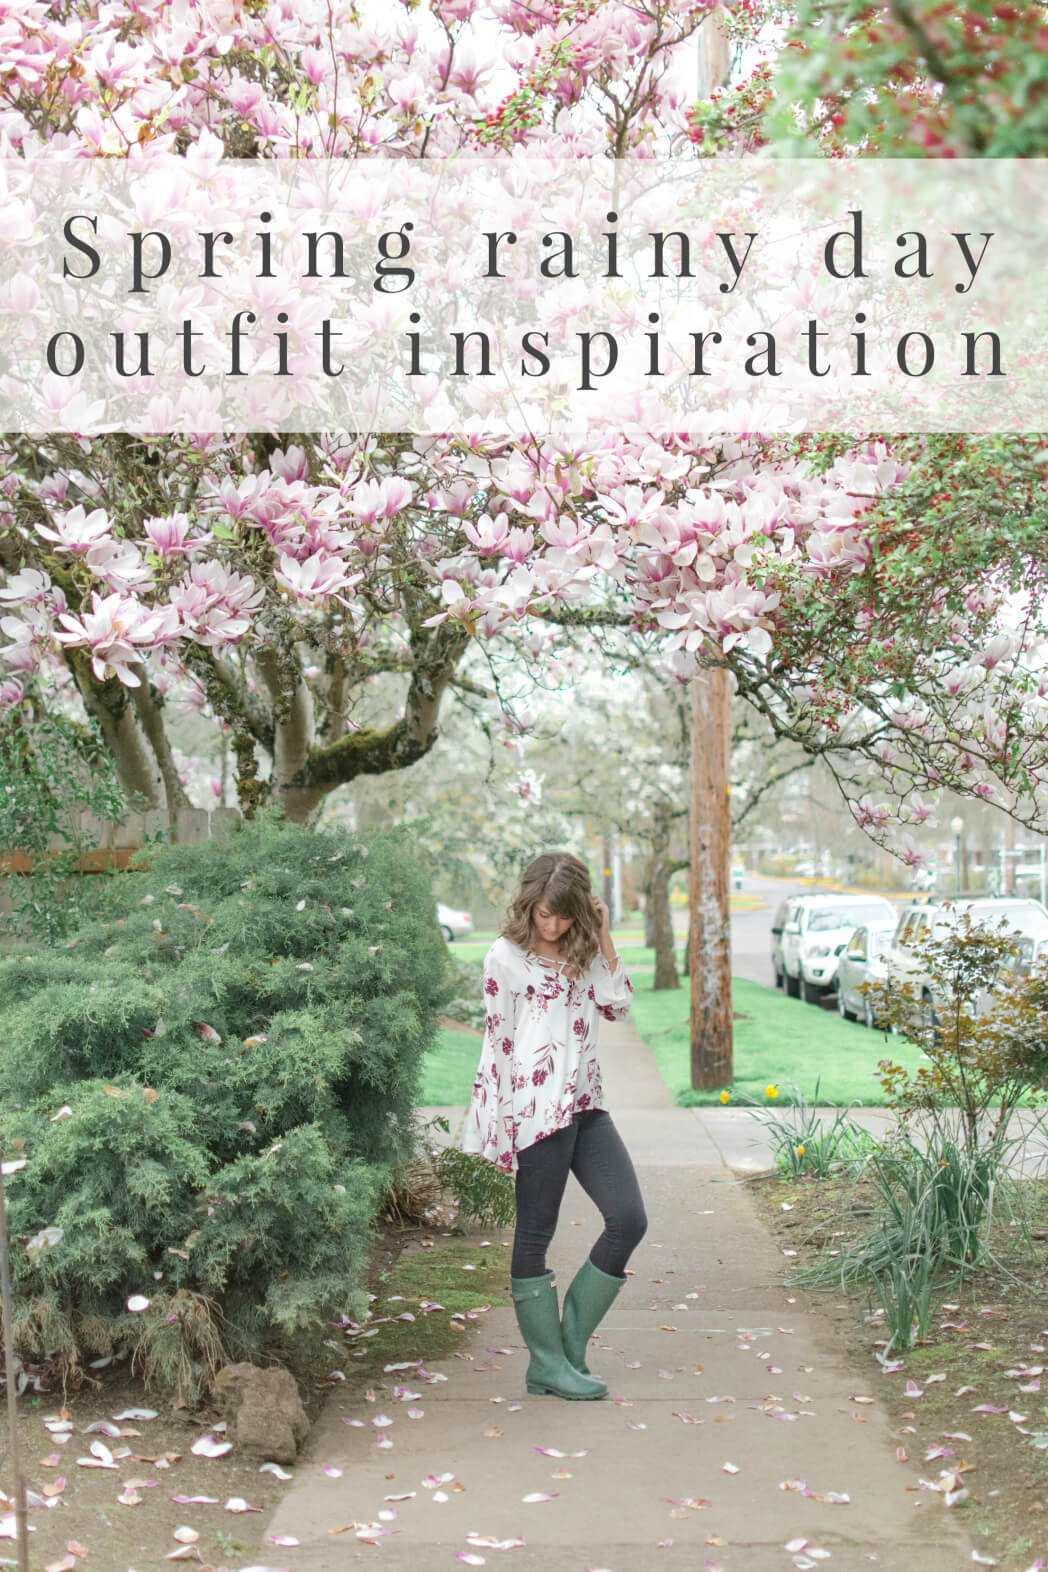 Rainy Day outfit inspiration for spring